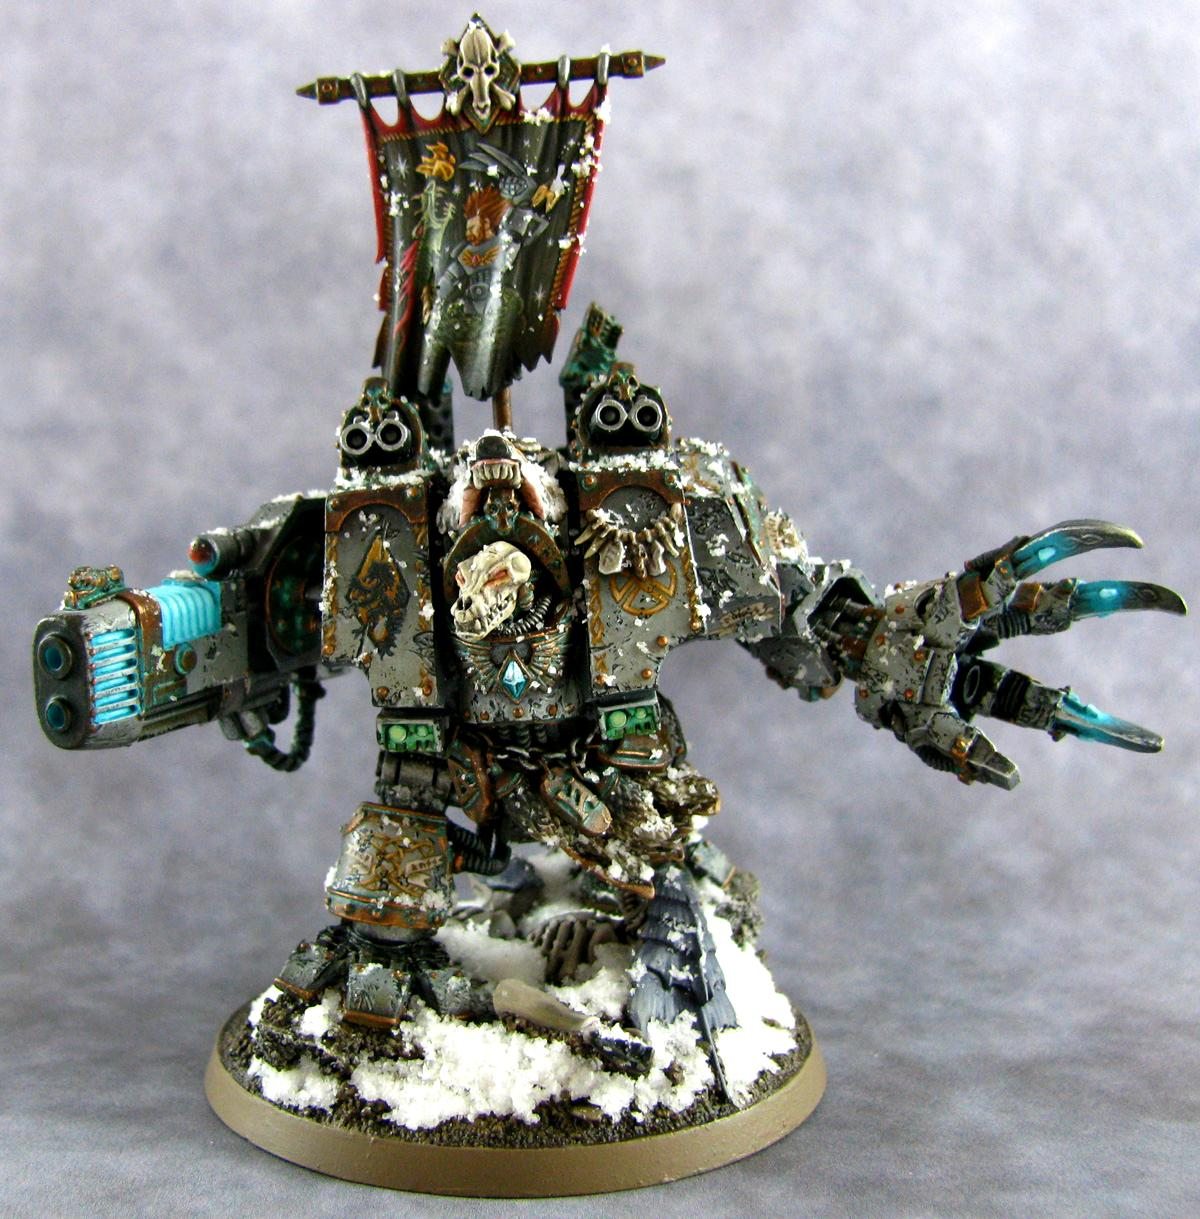 Bjorn, Dreadnought, Fell Hand, Space Marines, Space Wolves, Venerable, Warhammer 40,000